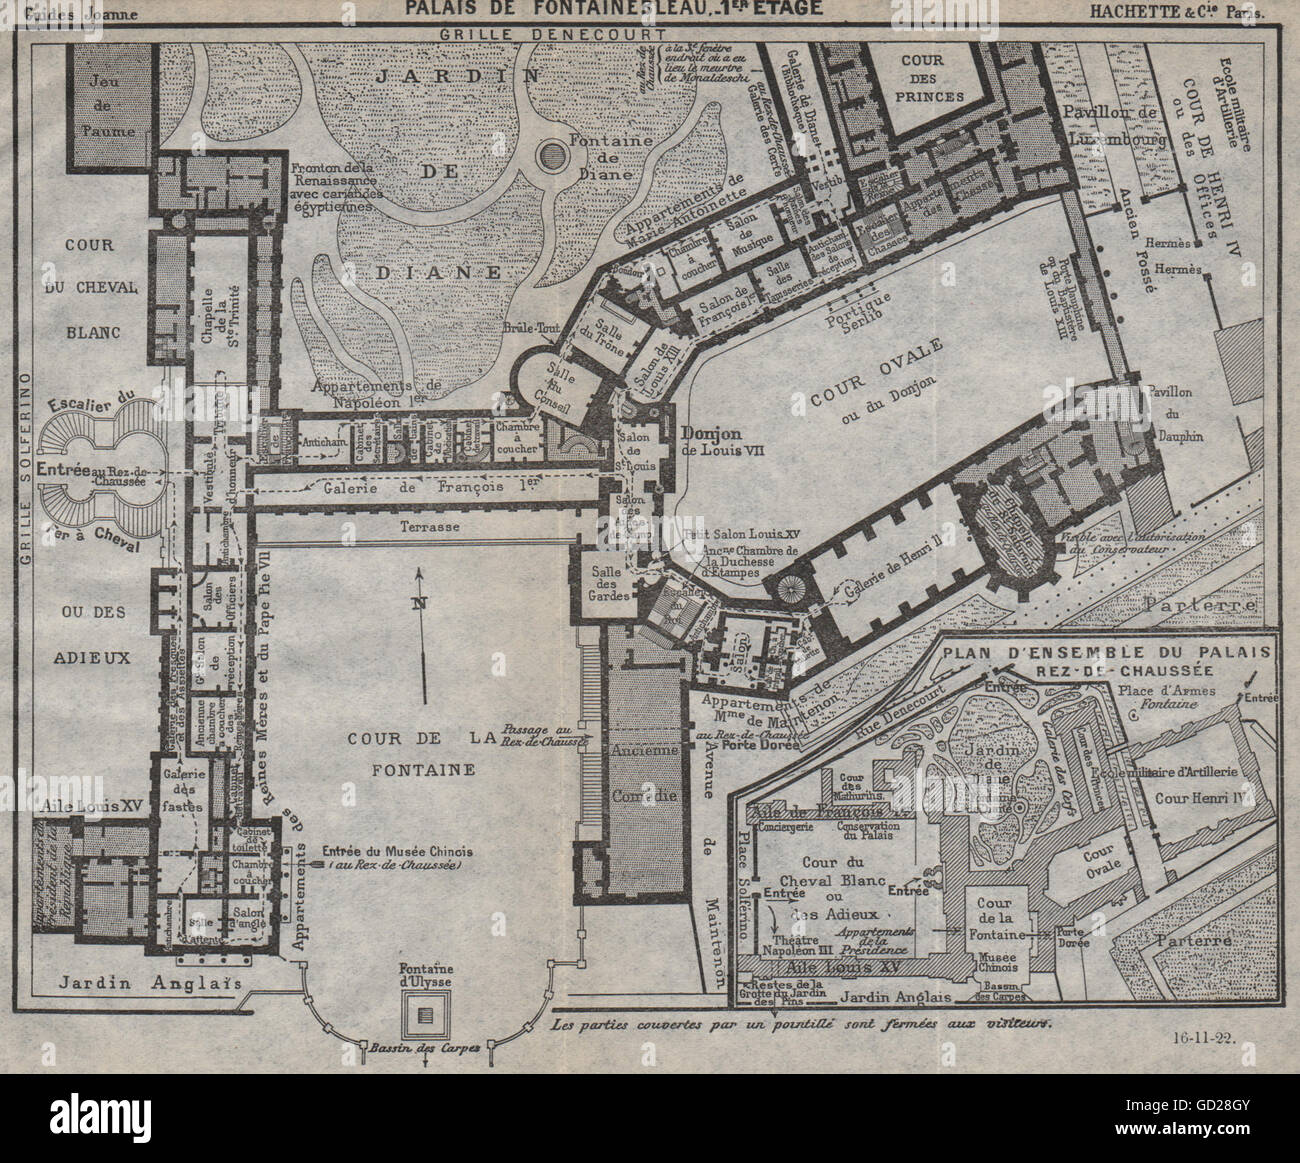 1st floor stock photos 1st floor stock images alamy palais de fontainebleau 1er etage 1st floor vintage map seine et